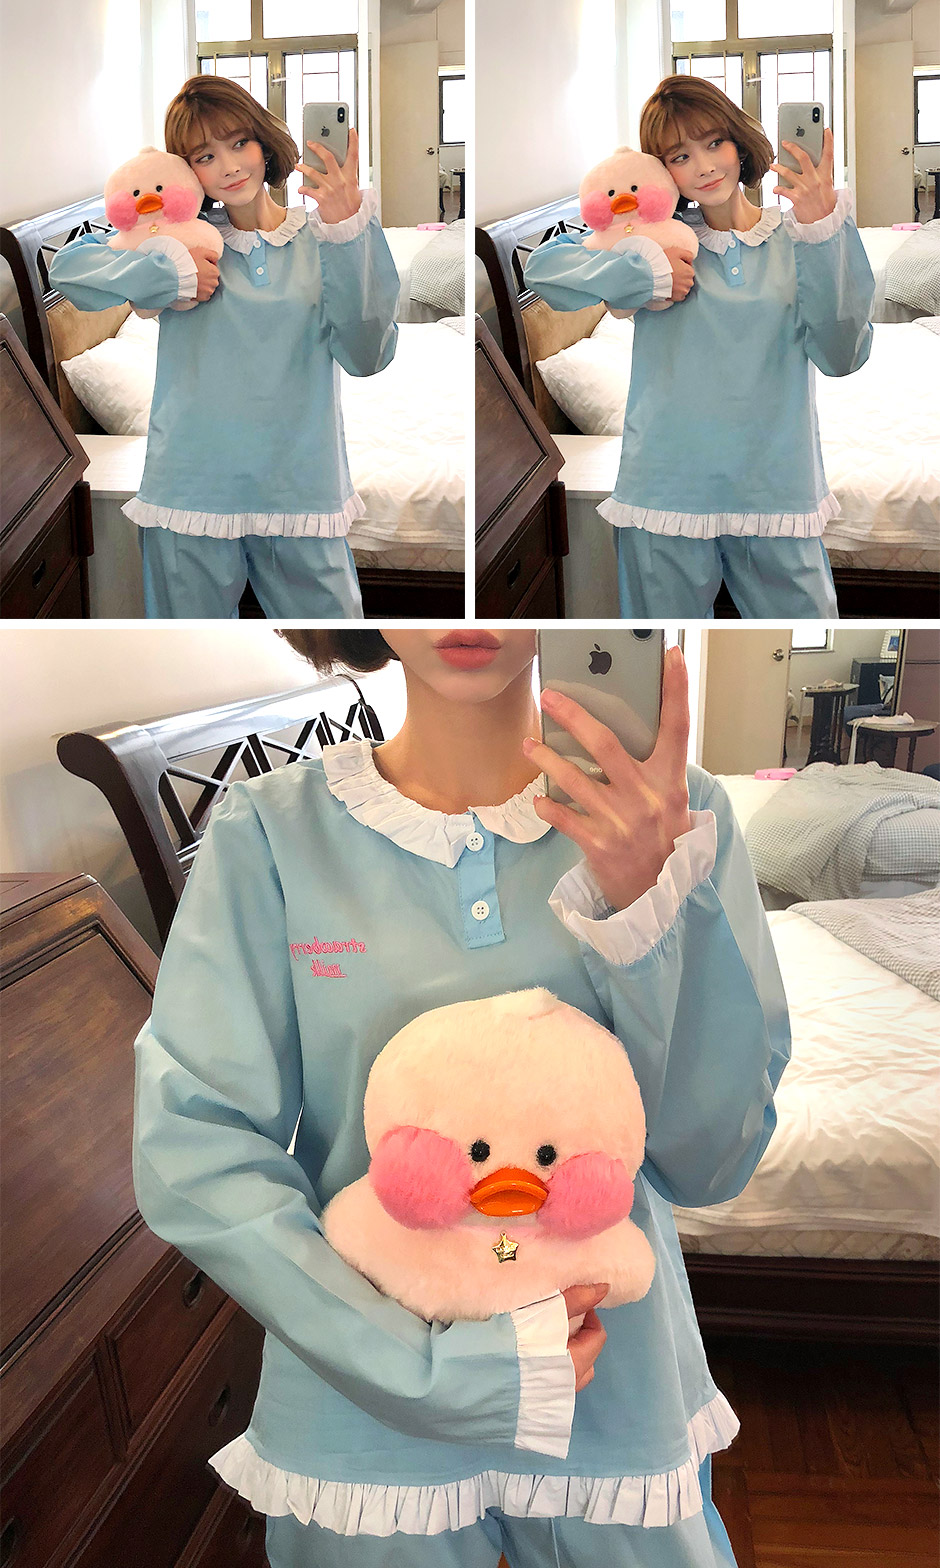 //cdn.nhanh.vn/cdn/store/29770/psCT/20180927/9207873/CHUU_Strawberry_Milk_Baby_Strawberry_Pajama_Set_(10).jpg